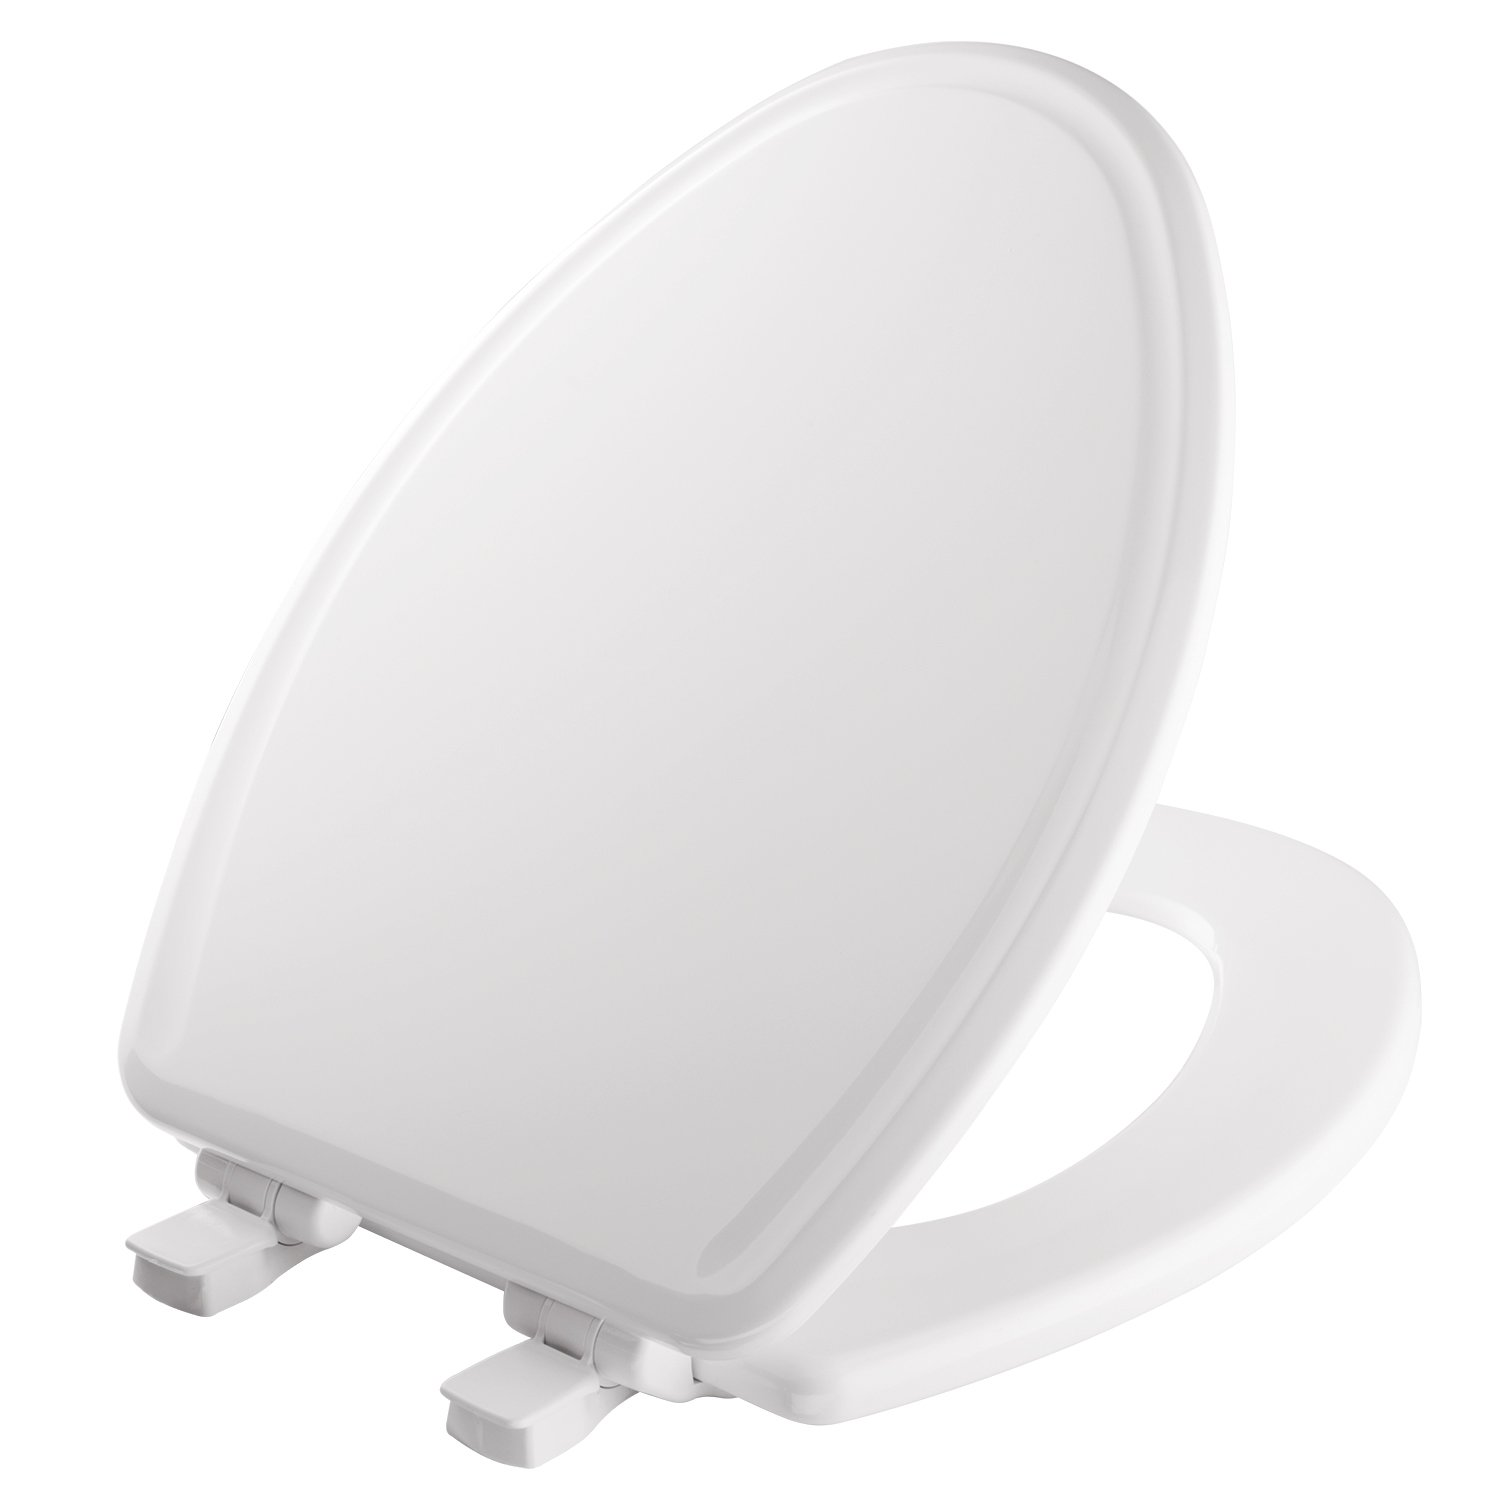 MAYFAIR Toilet Seat will Slow Close, Never Loosen and Easily Remove, ELONGATED, Durable Enameled Wood, White, 148SLOWA 000/1848SLOWA 000